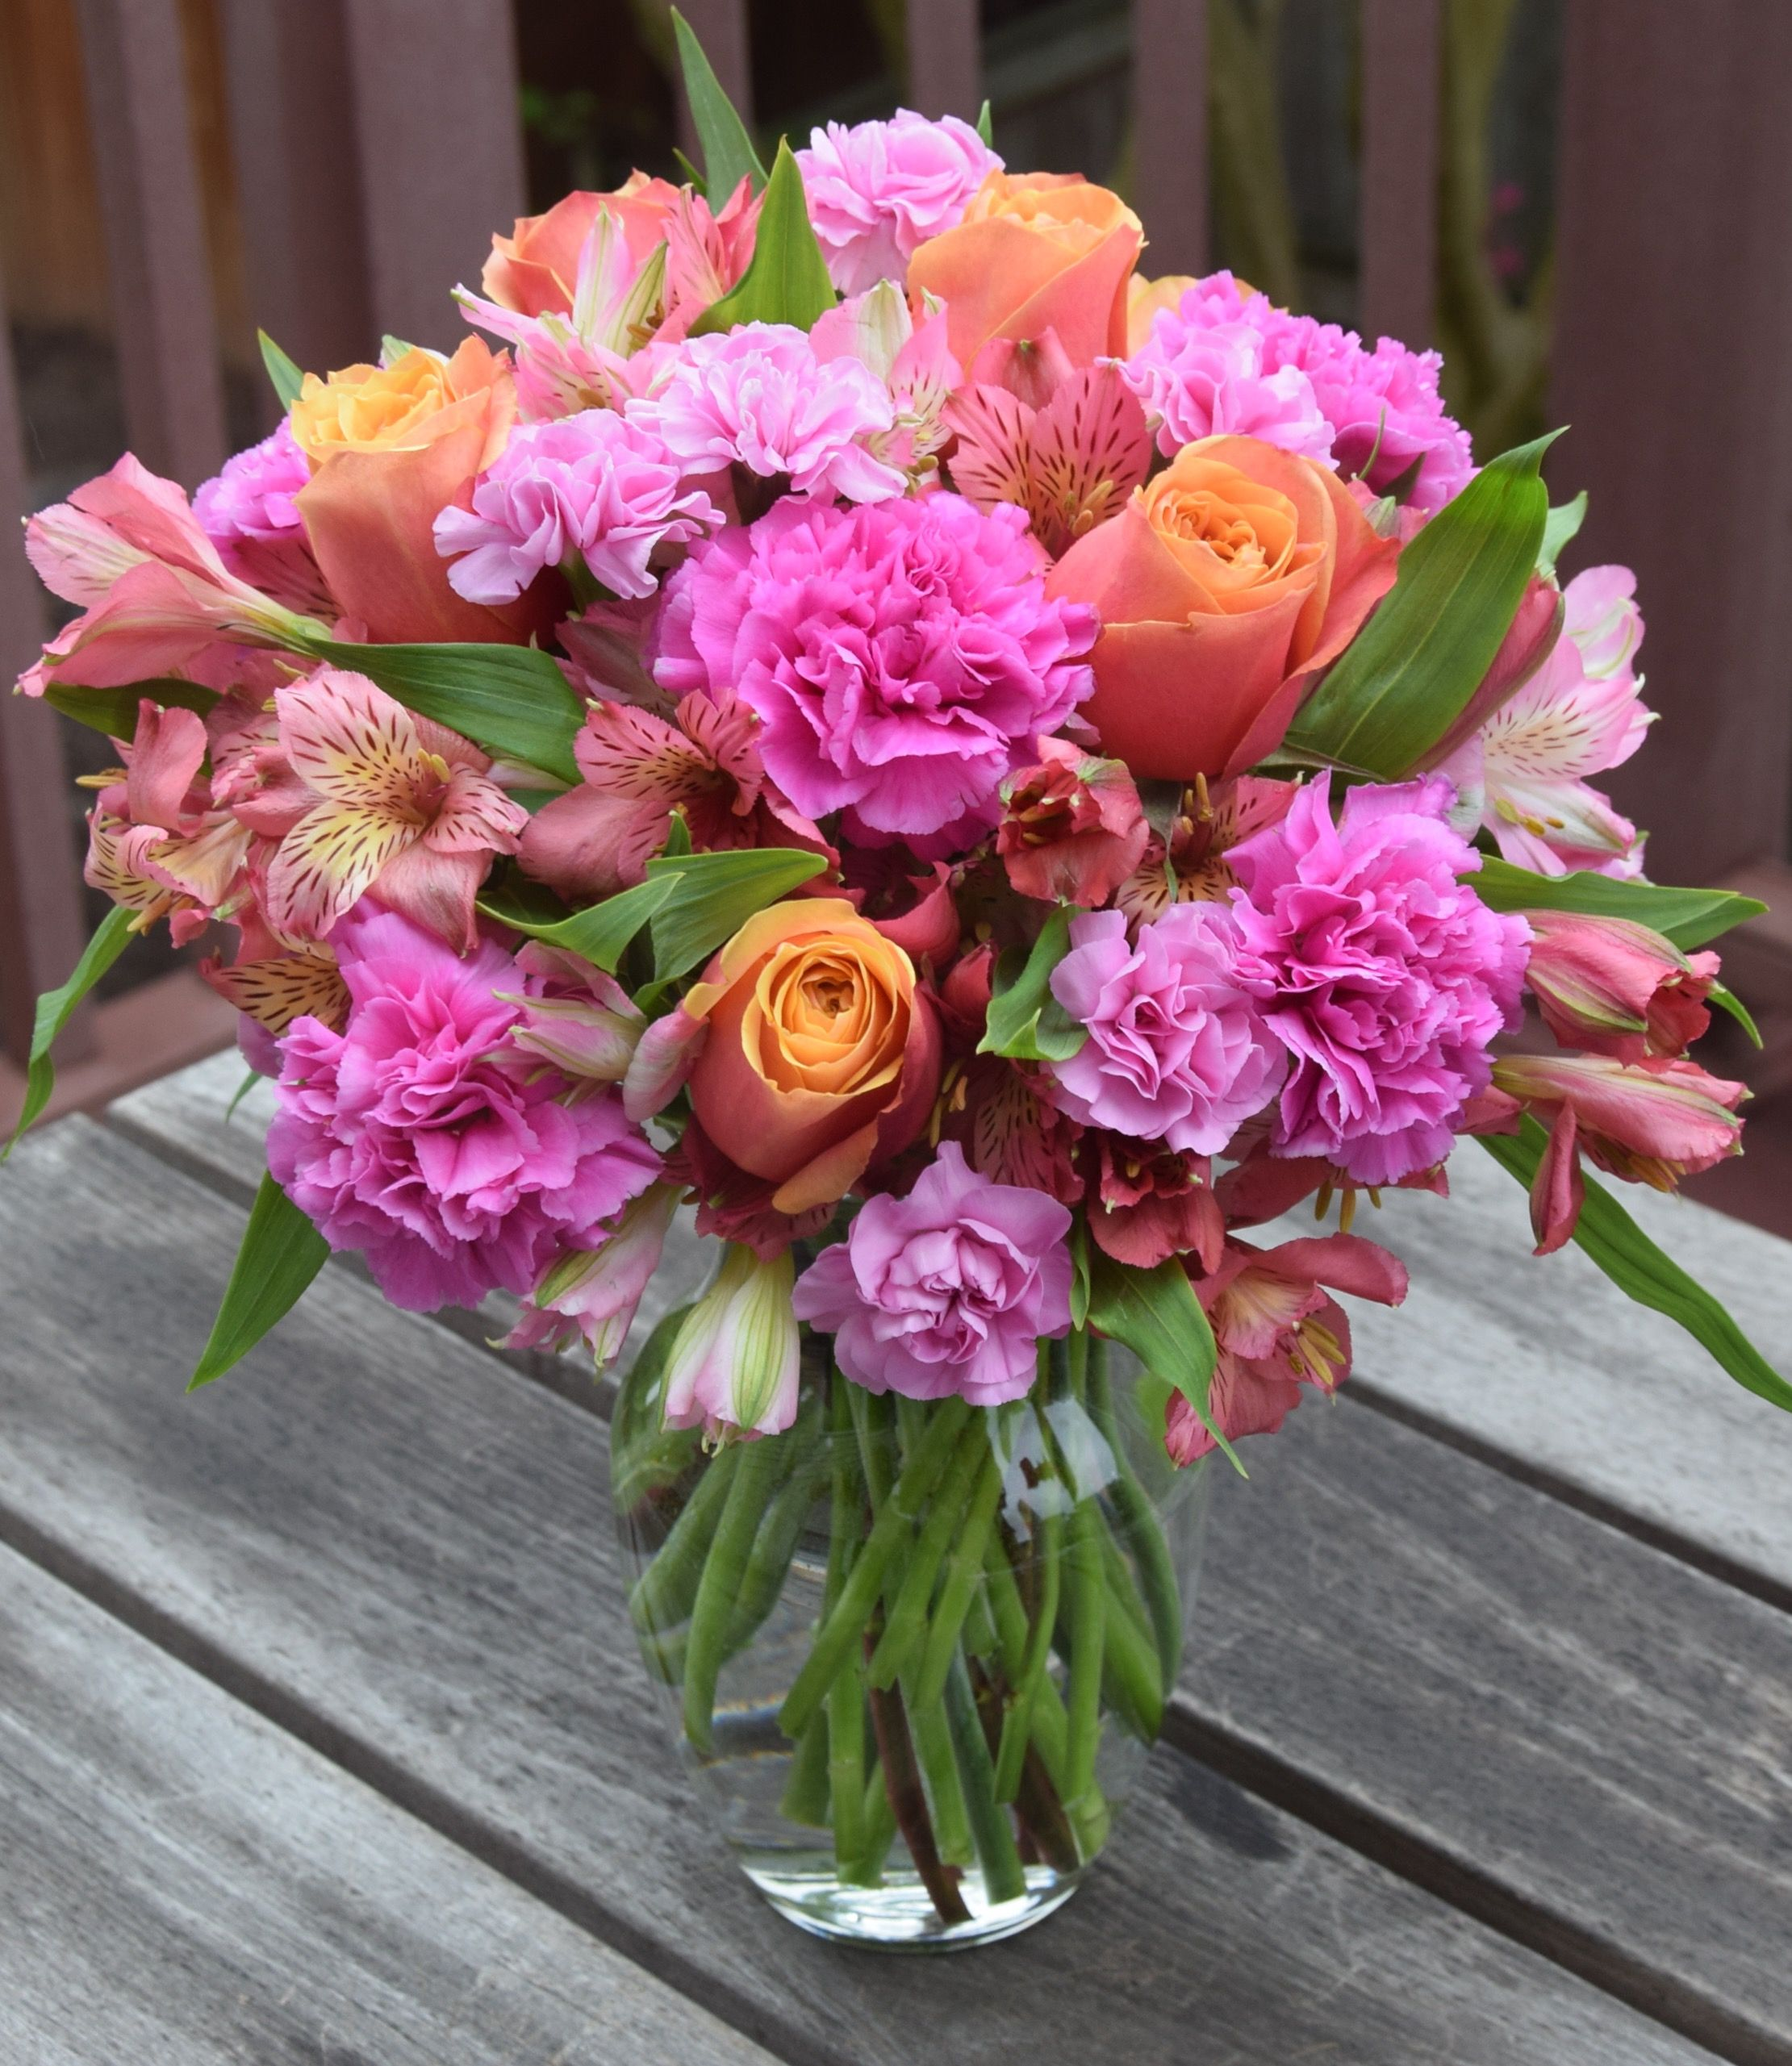 Flower bouquet of roses, alstroemeria, carnations